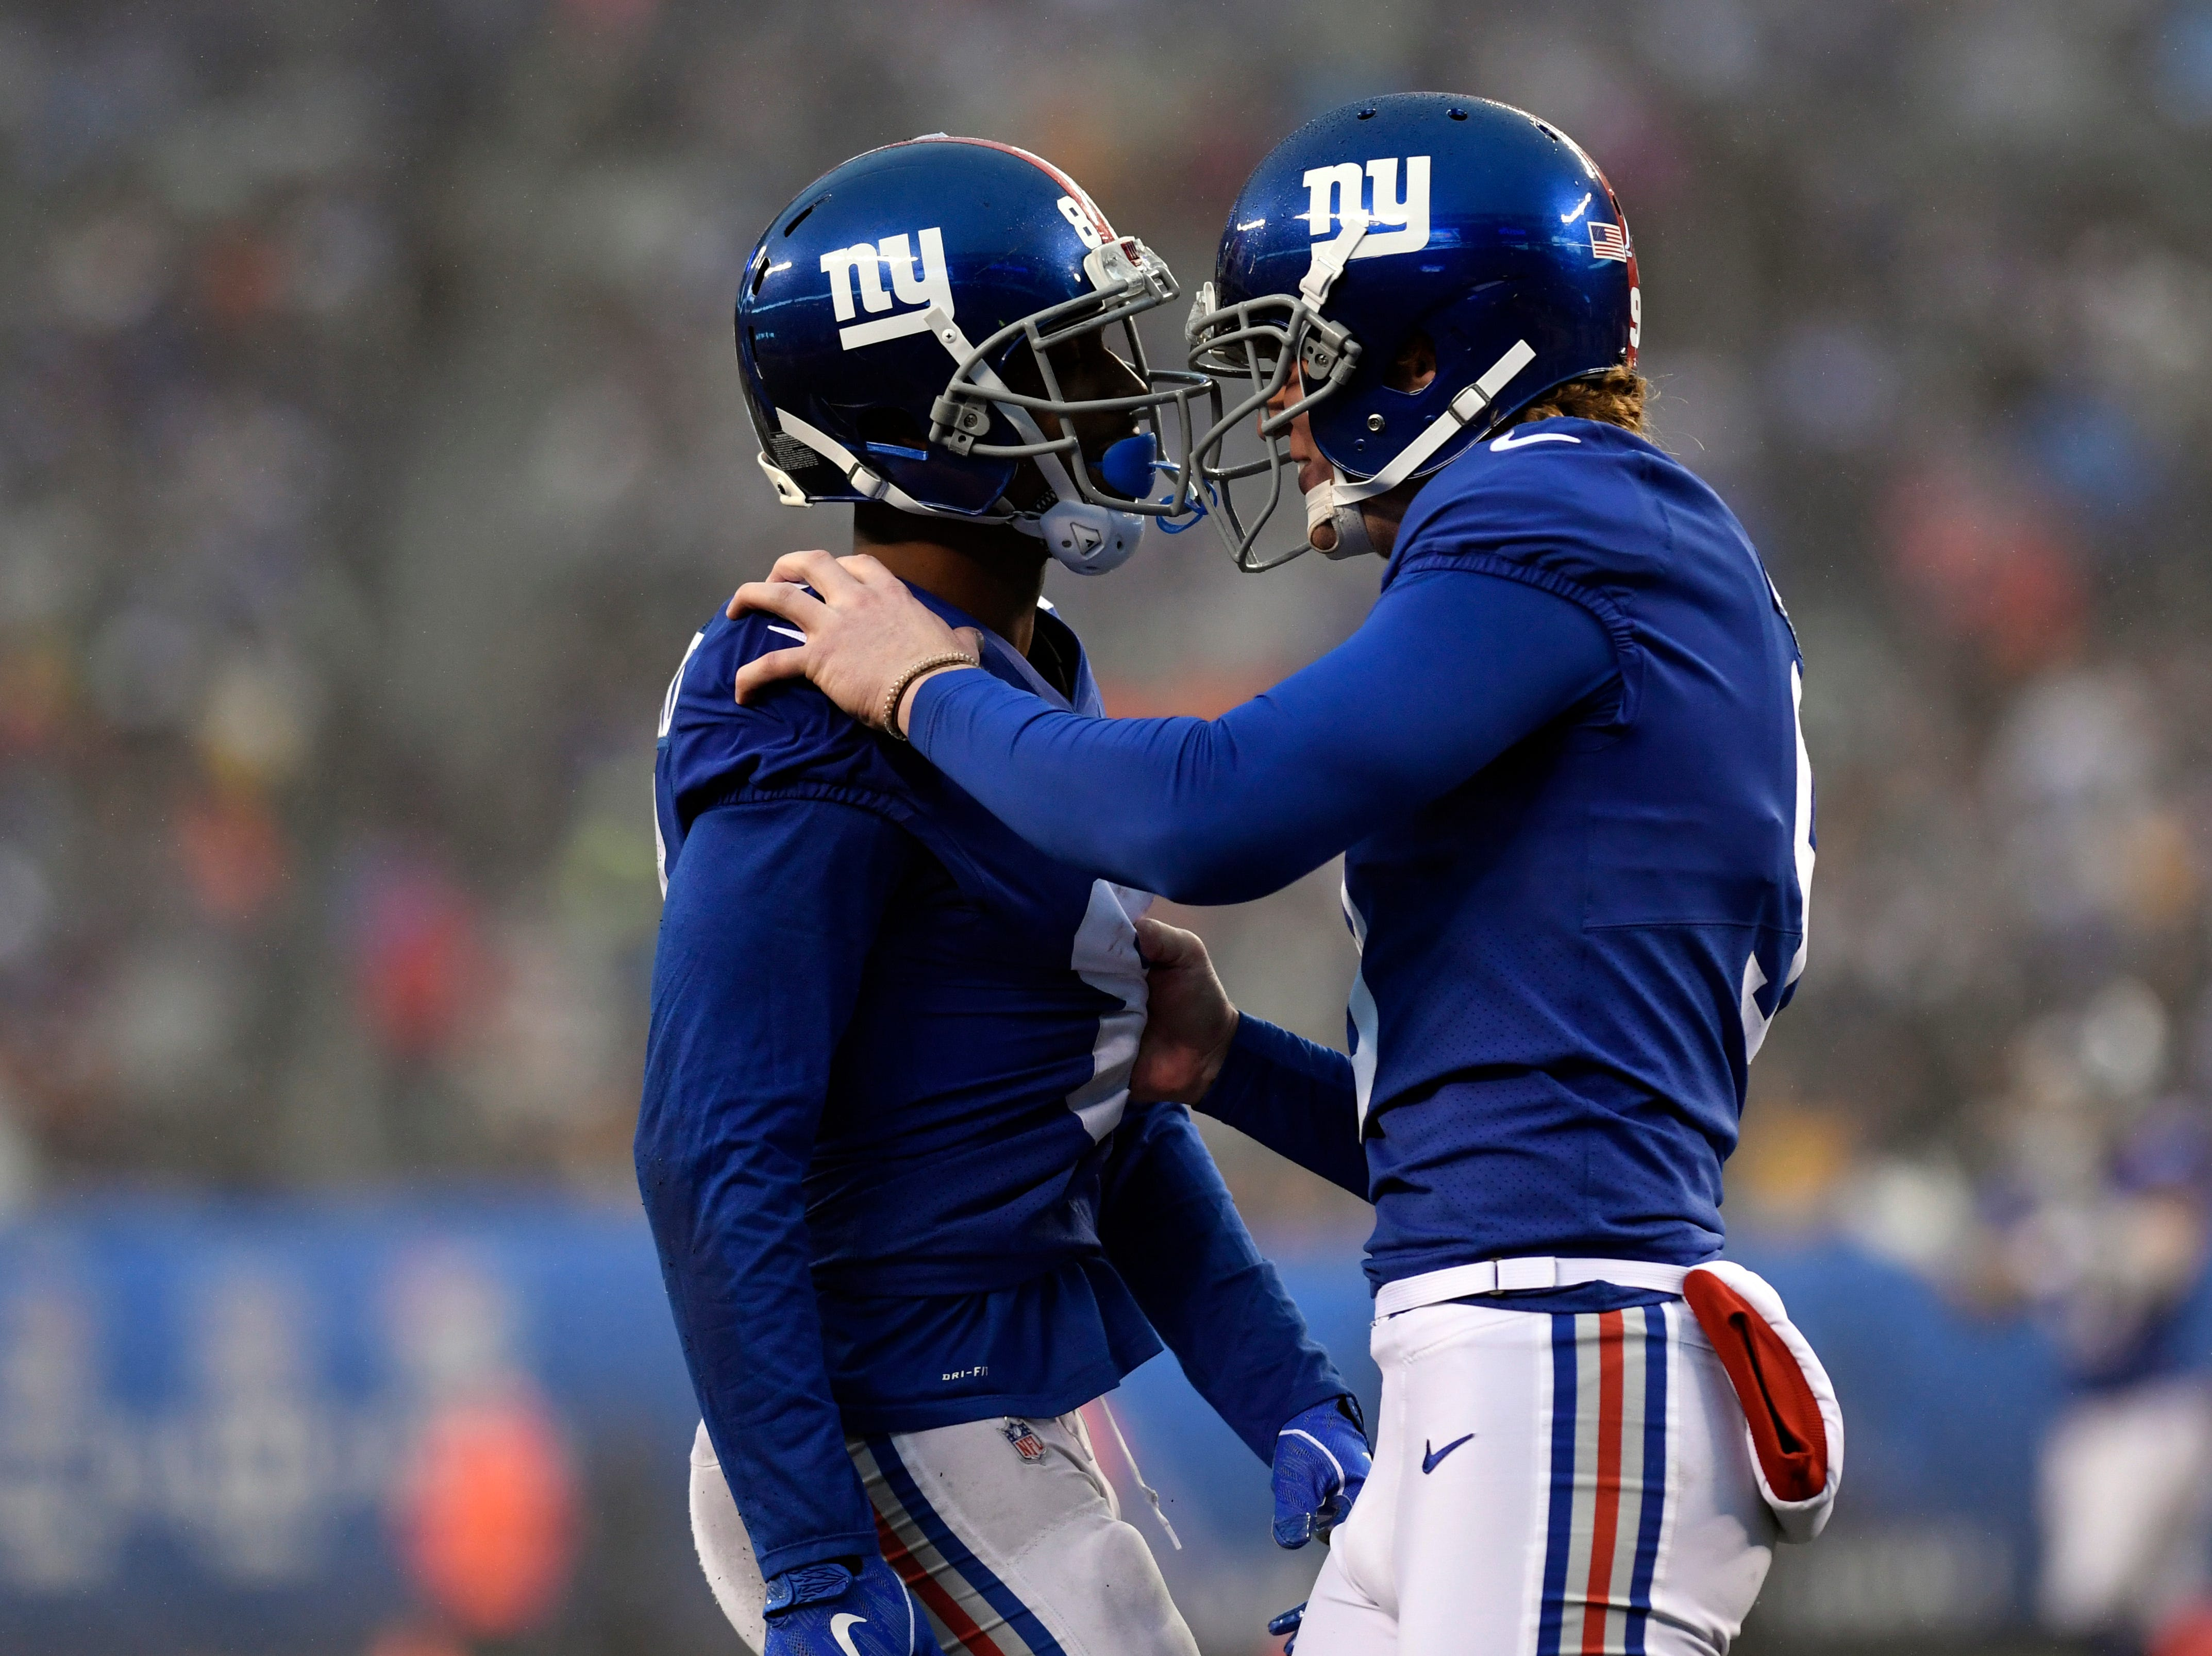 New York Giants wide receiver Russell Shepard, left, and punter Riley Dixon, right, celebrate after a special teams play putting the Chicago Bears at their own first yard line. The New York Giants defeat the Chicago Bears in overtime 30-27 on Sunday, Dec. 2, 2018, in East Rutherford.